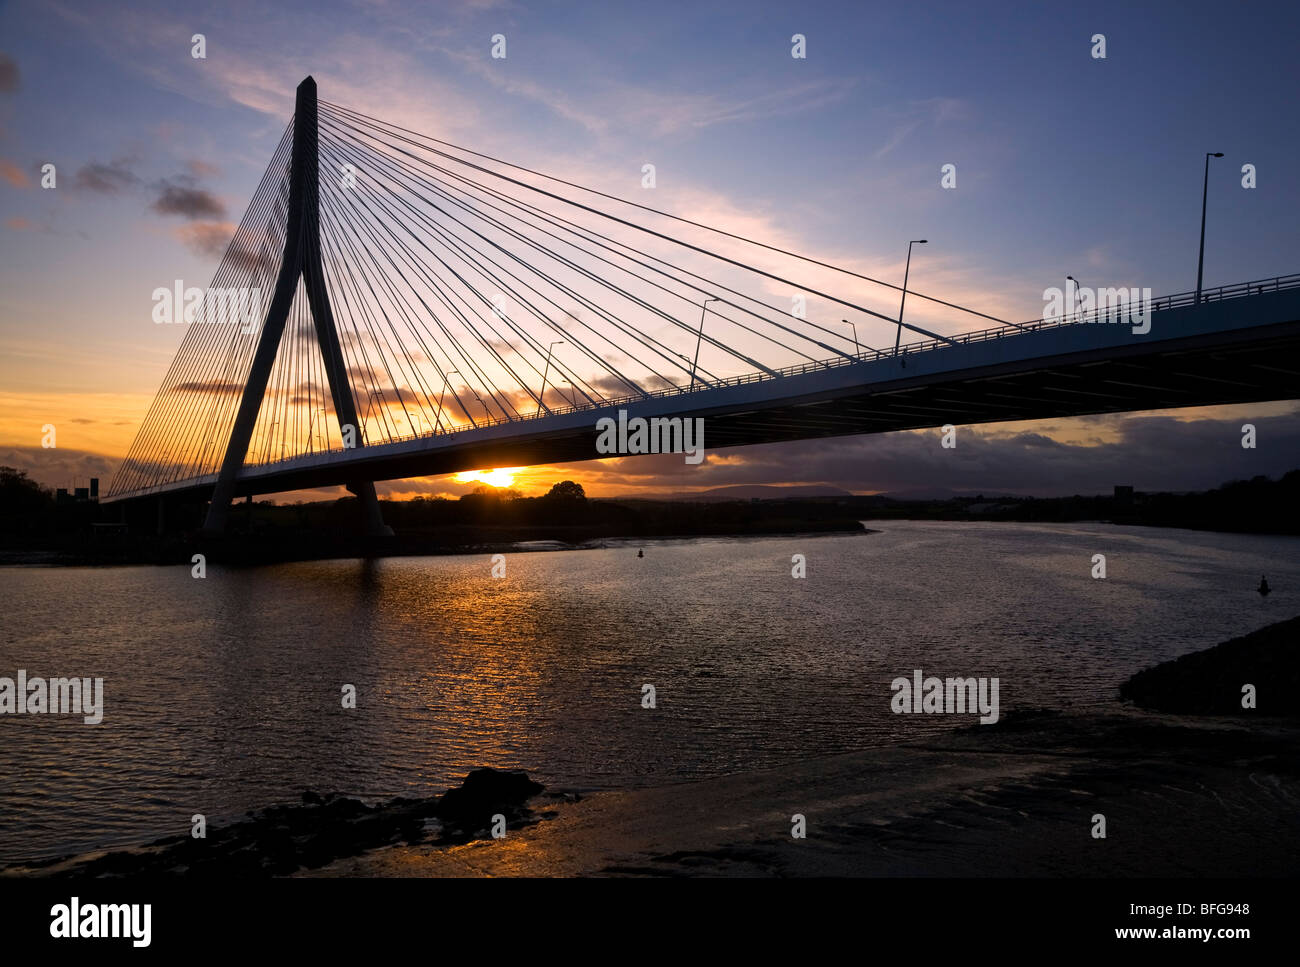 (New) Waterford Suir Bridge, The Longest Cable Stayed Bridge in Ireland, County Waterford, Ireland - Stock Image